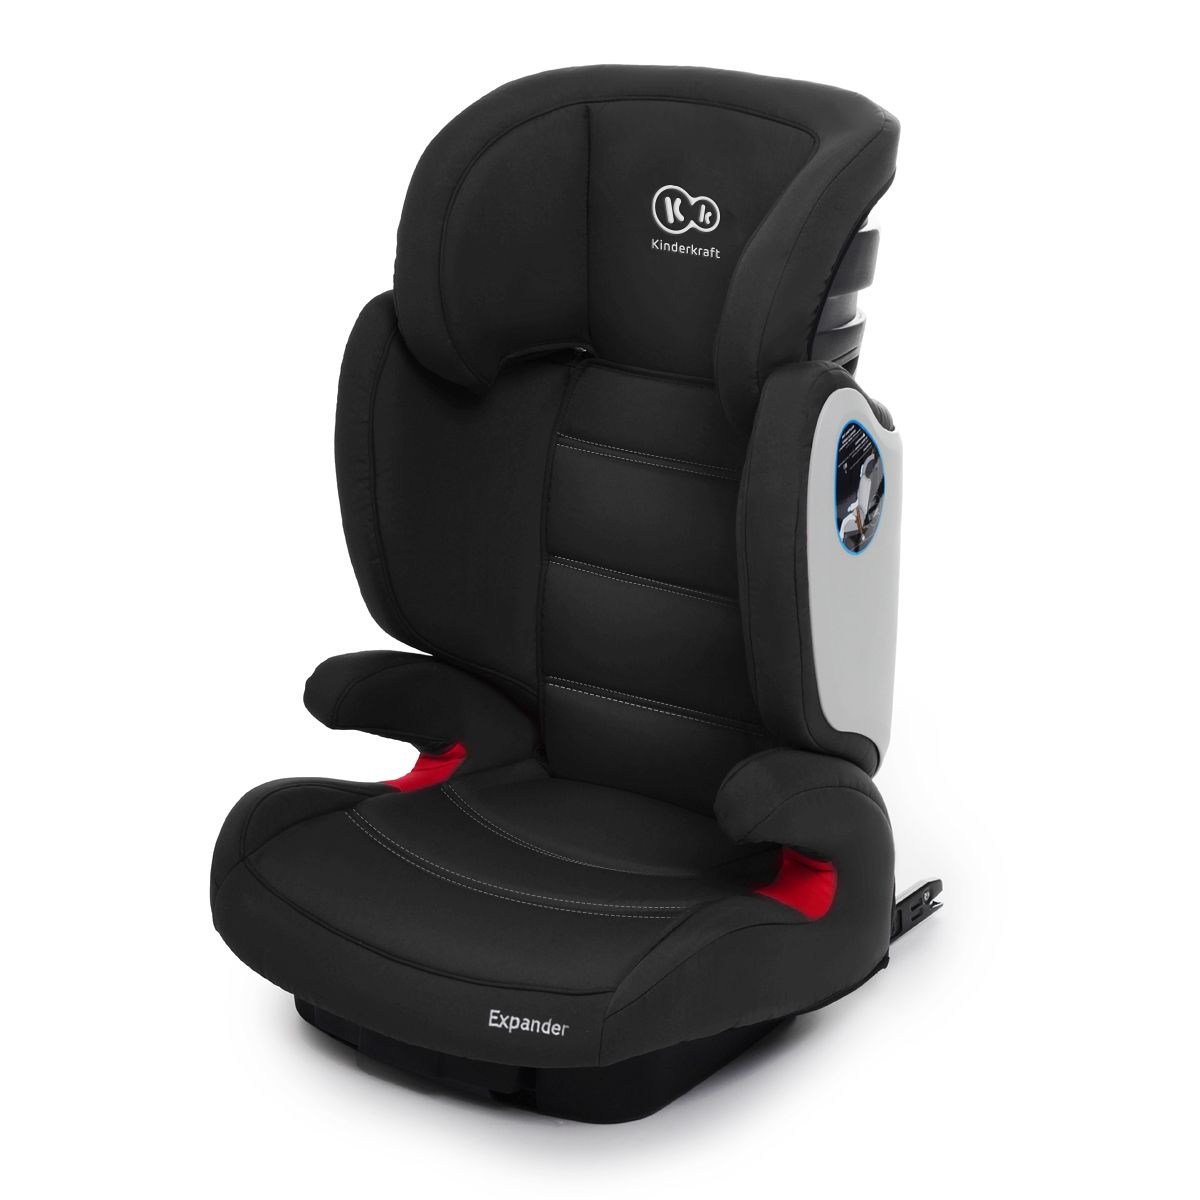 isofix kindersitz 15 36 kg gruppe 2 3 kinderautositz autositz expander schwarz ebay. Black Bedroom Furniture Sets. Home Design Ideas